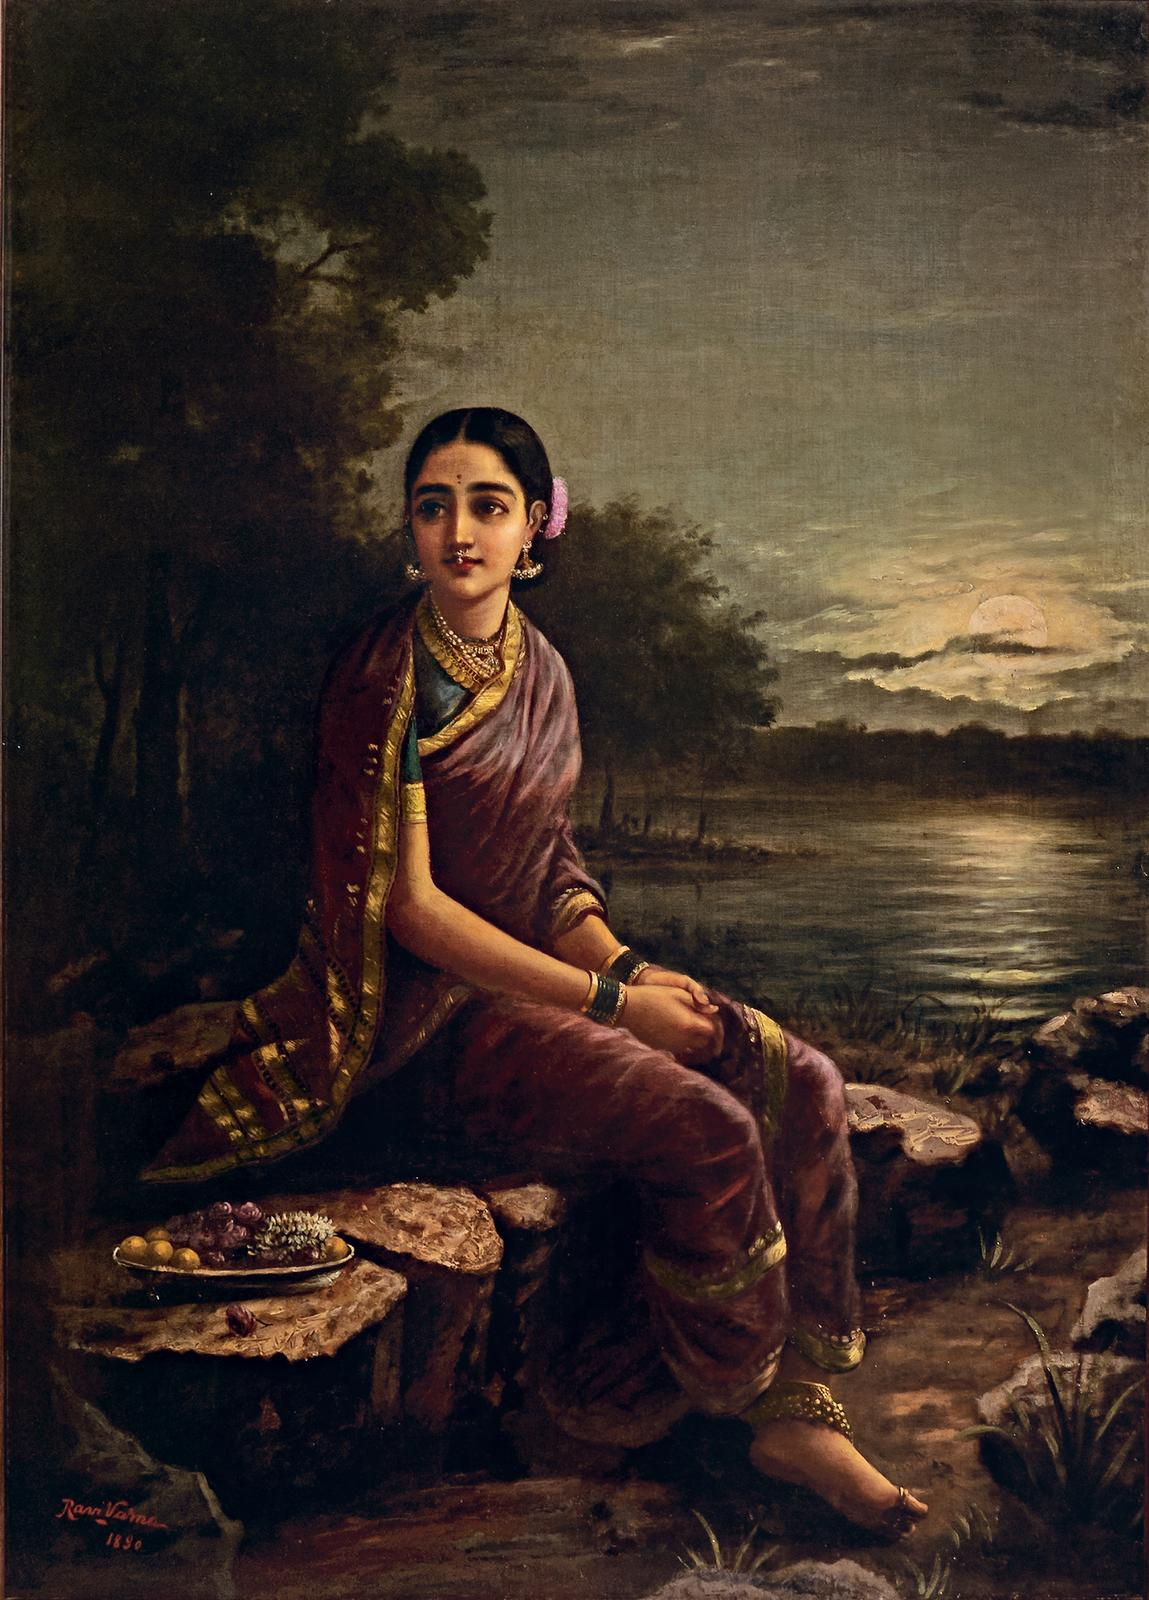 Radha in the Moonlight | Pundole's